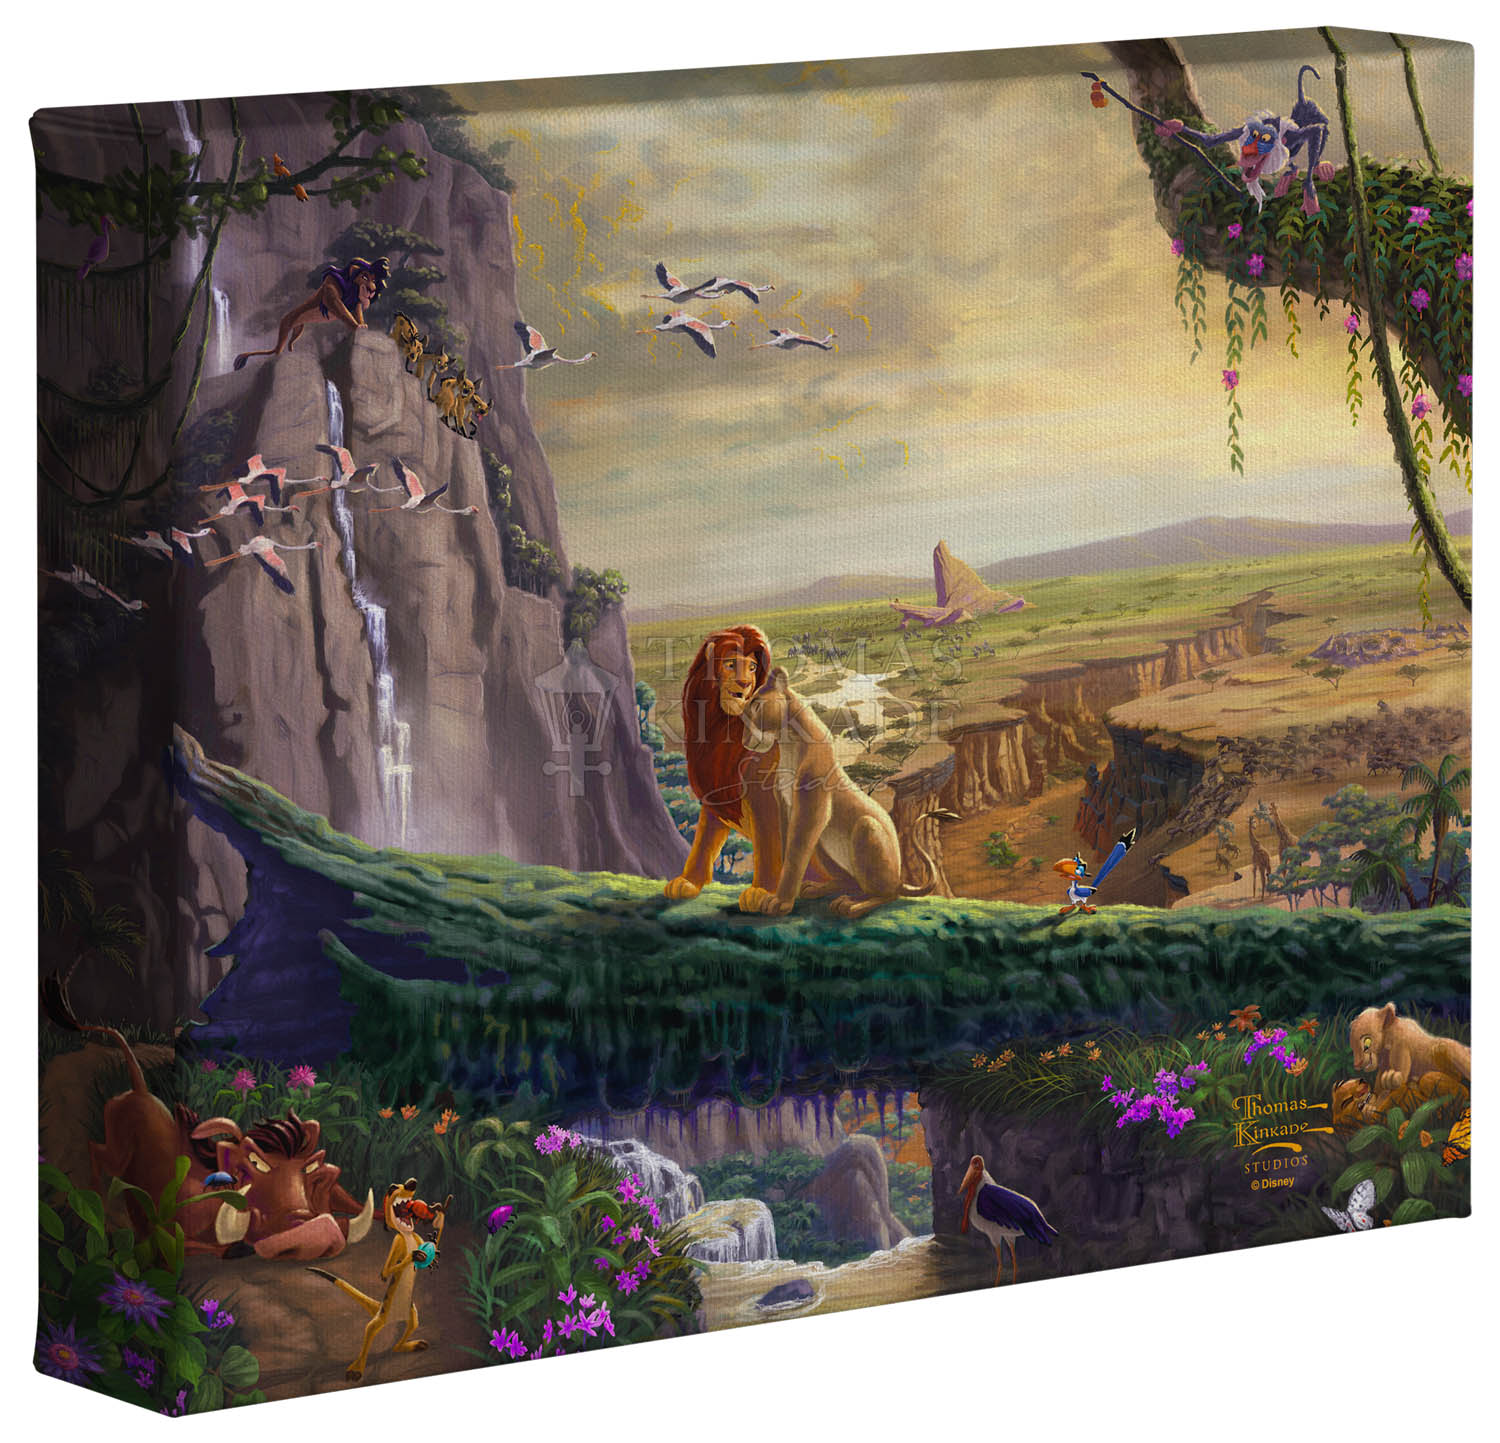 Lion King Return To Pride Rock 8 X 10 Gallery Wrapped Canvas